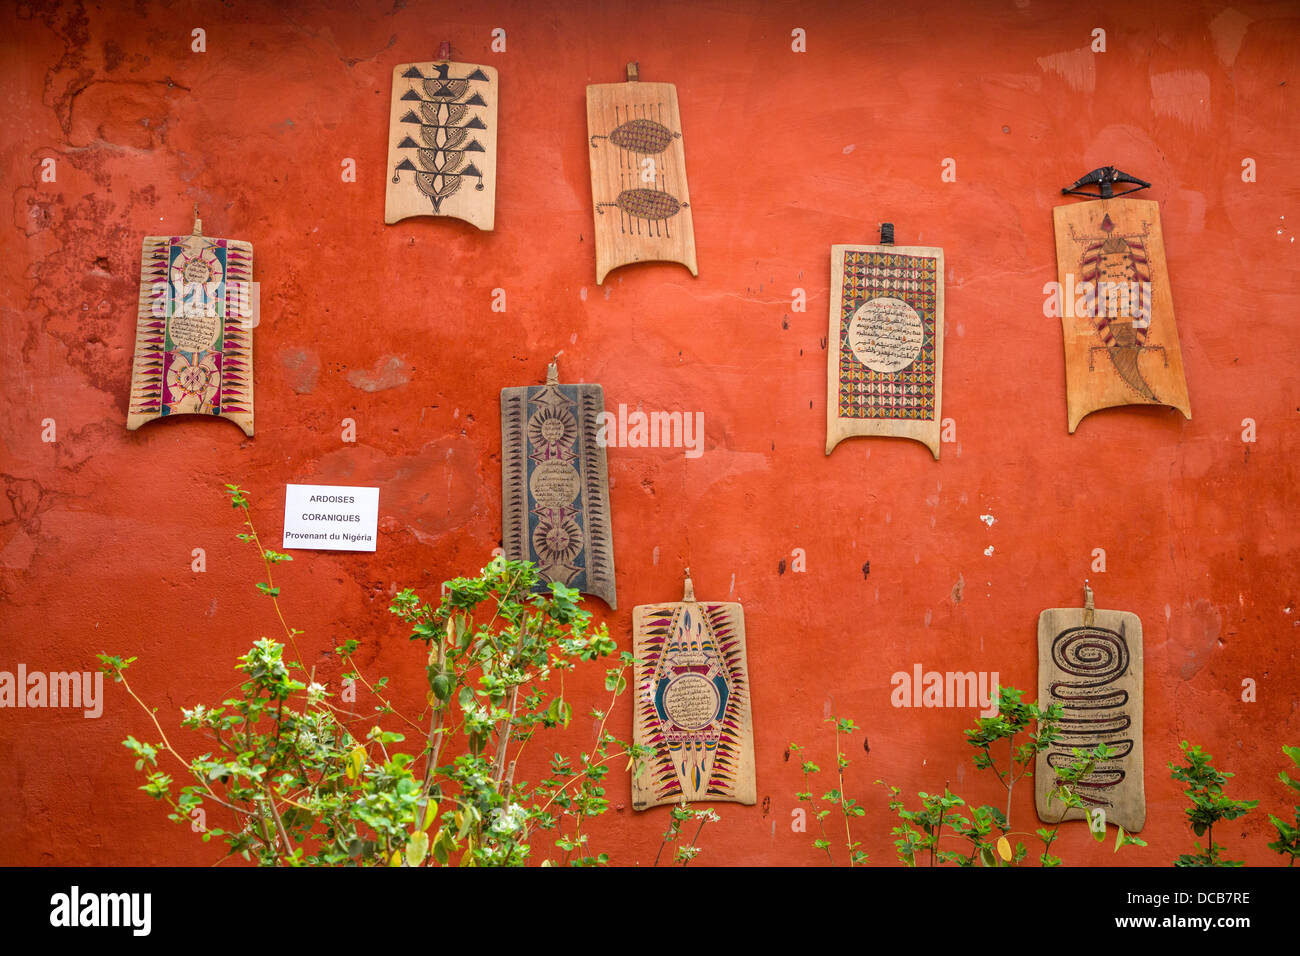 Hausa Not Mali Photos Hausa Not Mali Images Alamy